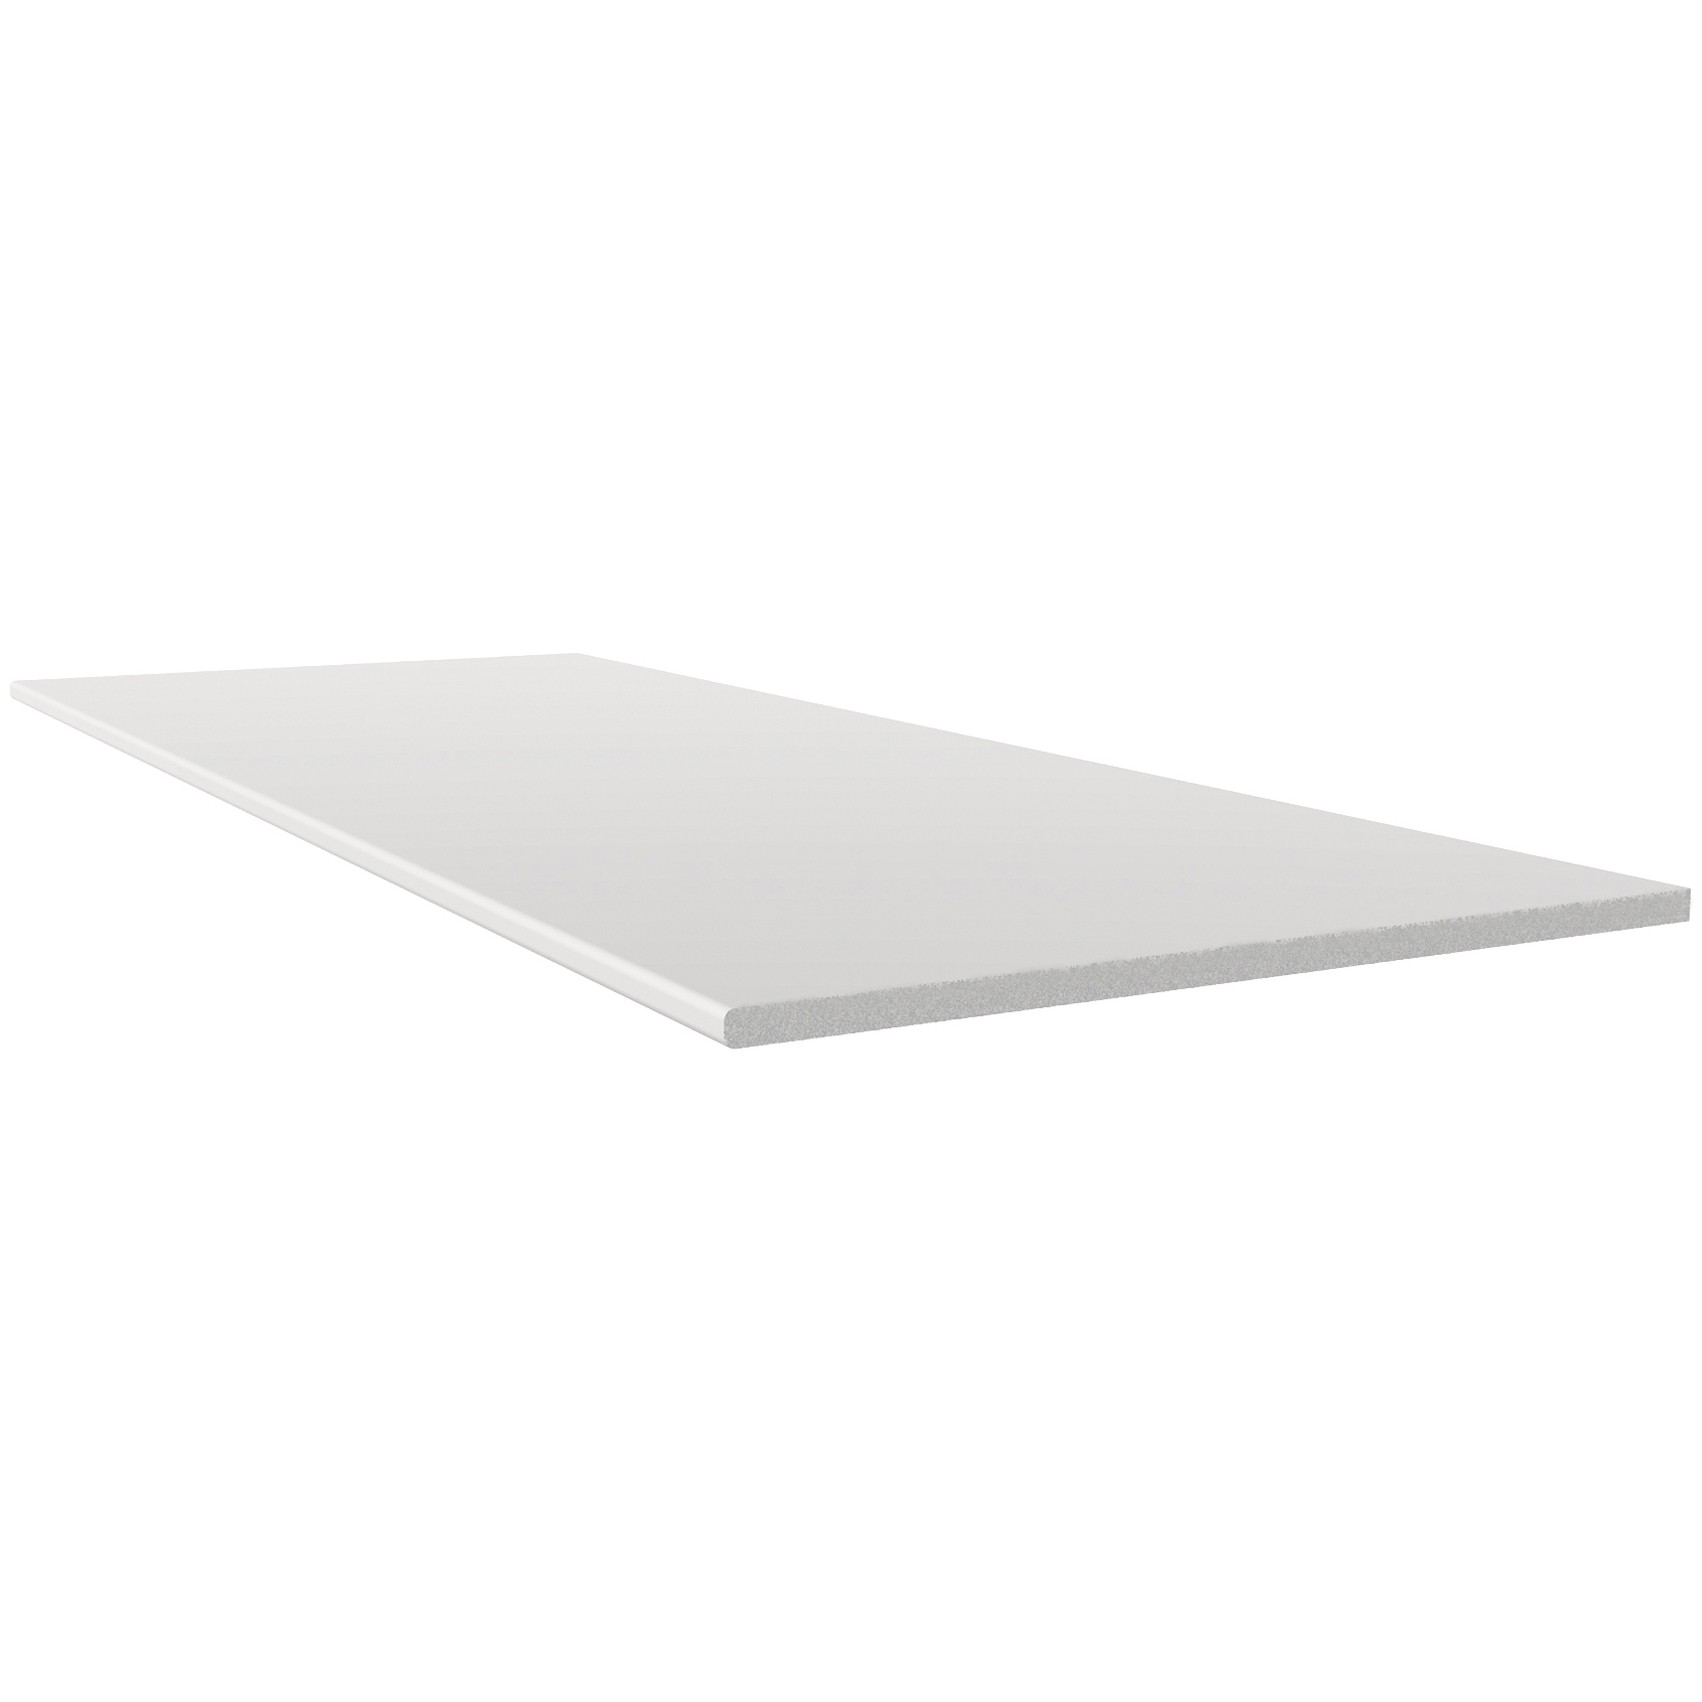 Freefoam 10mm Solid Soffit Board - White, 605mm, 5 metre